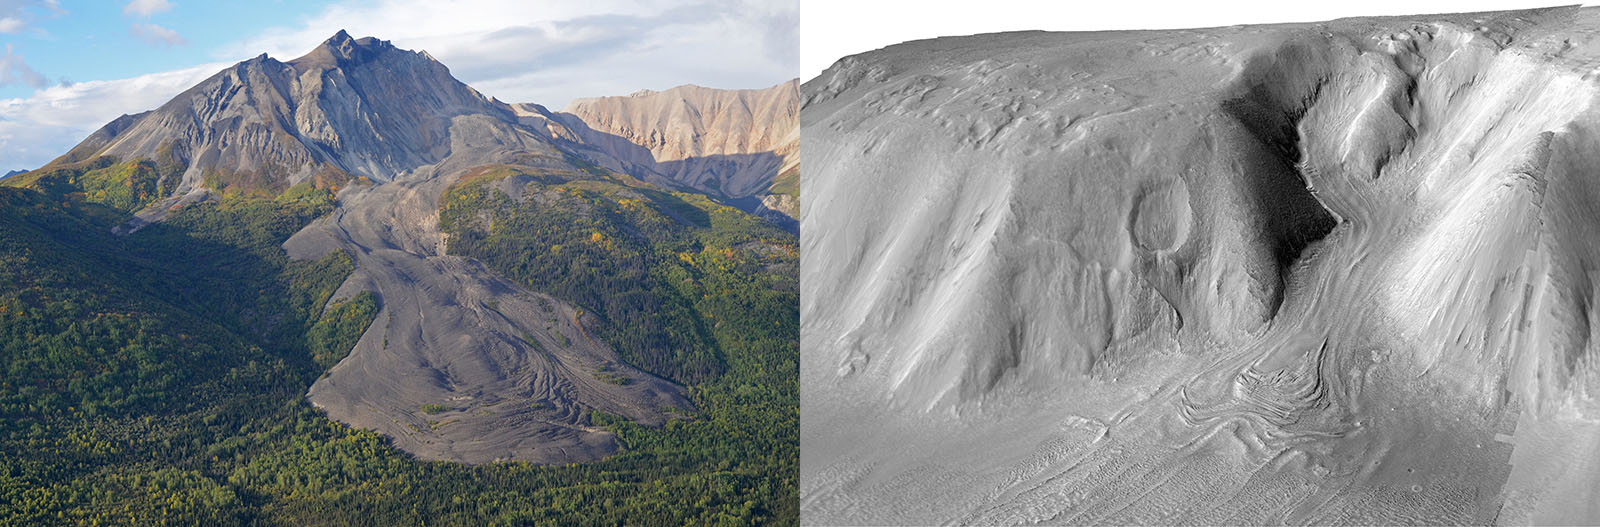 Debris covered glacier examples